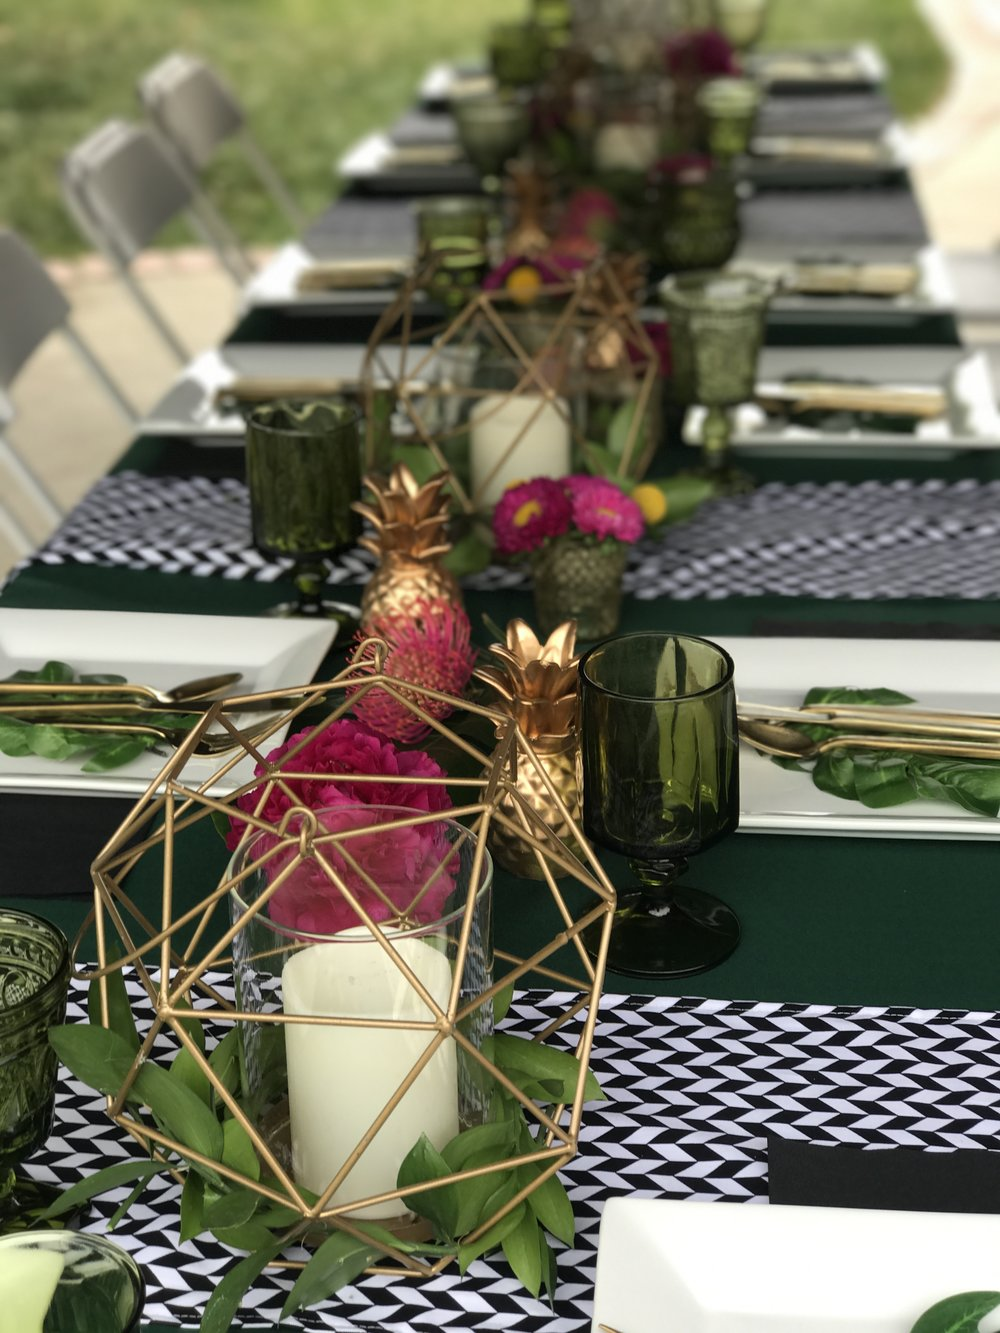 The amazing green goblets and gold flatware were provided by  Party Pleasers  in Camarillo. All other items were provided by Down Emery Lane.